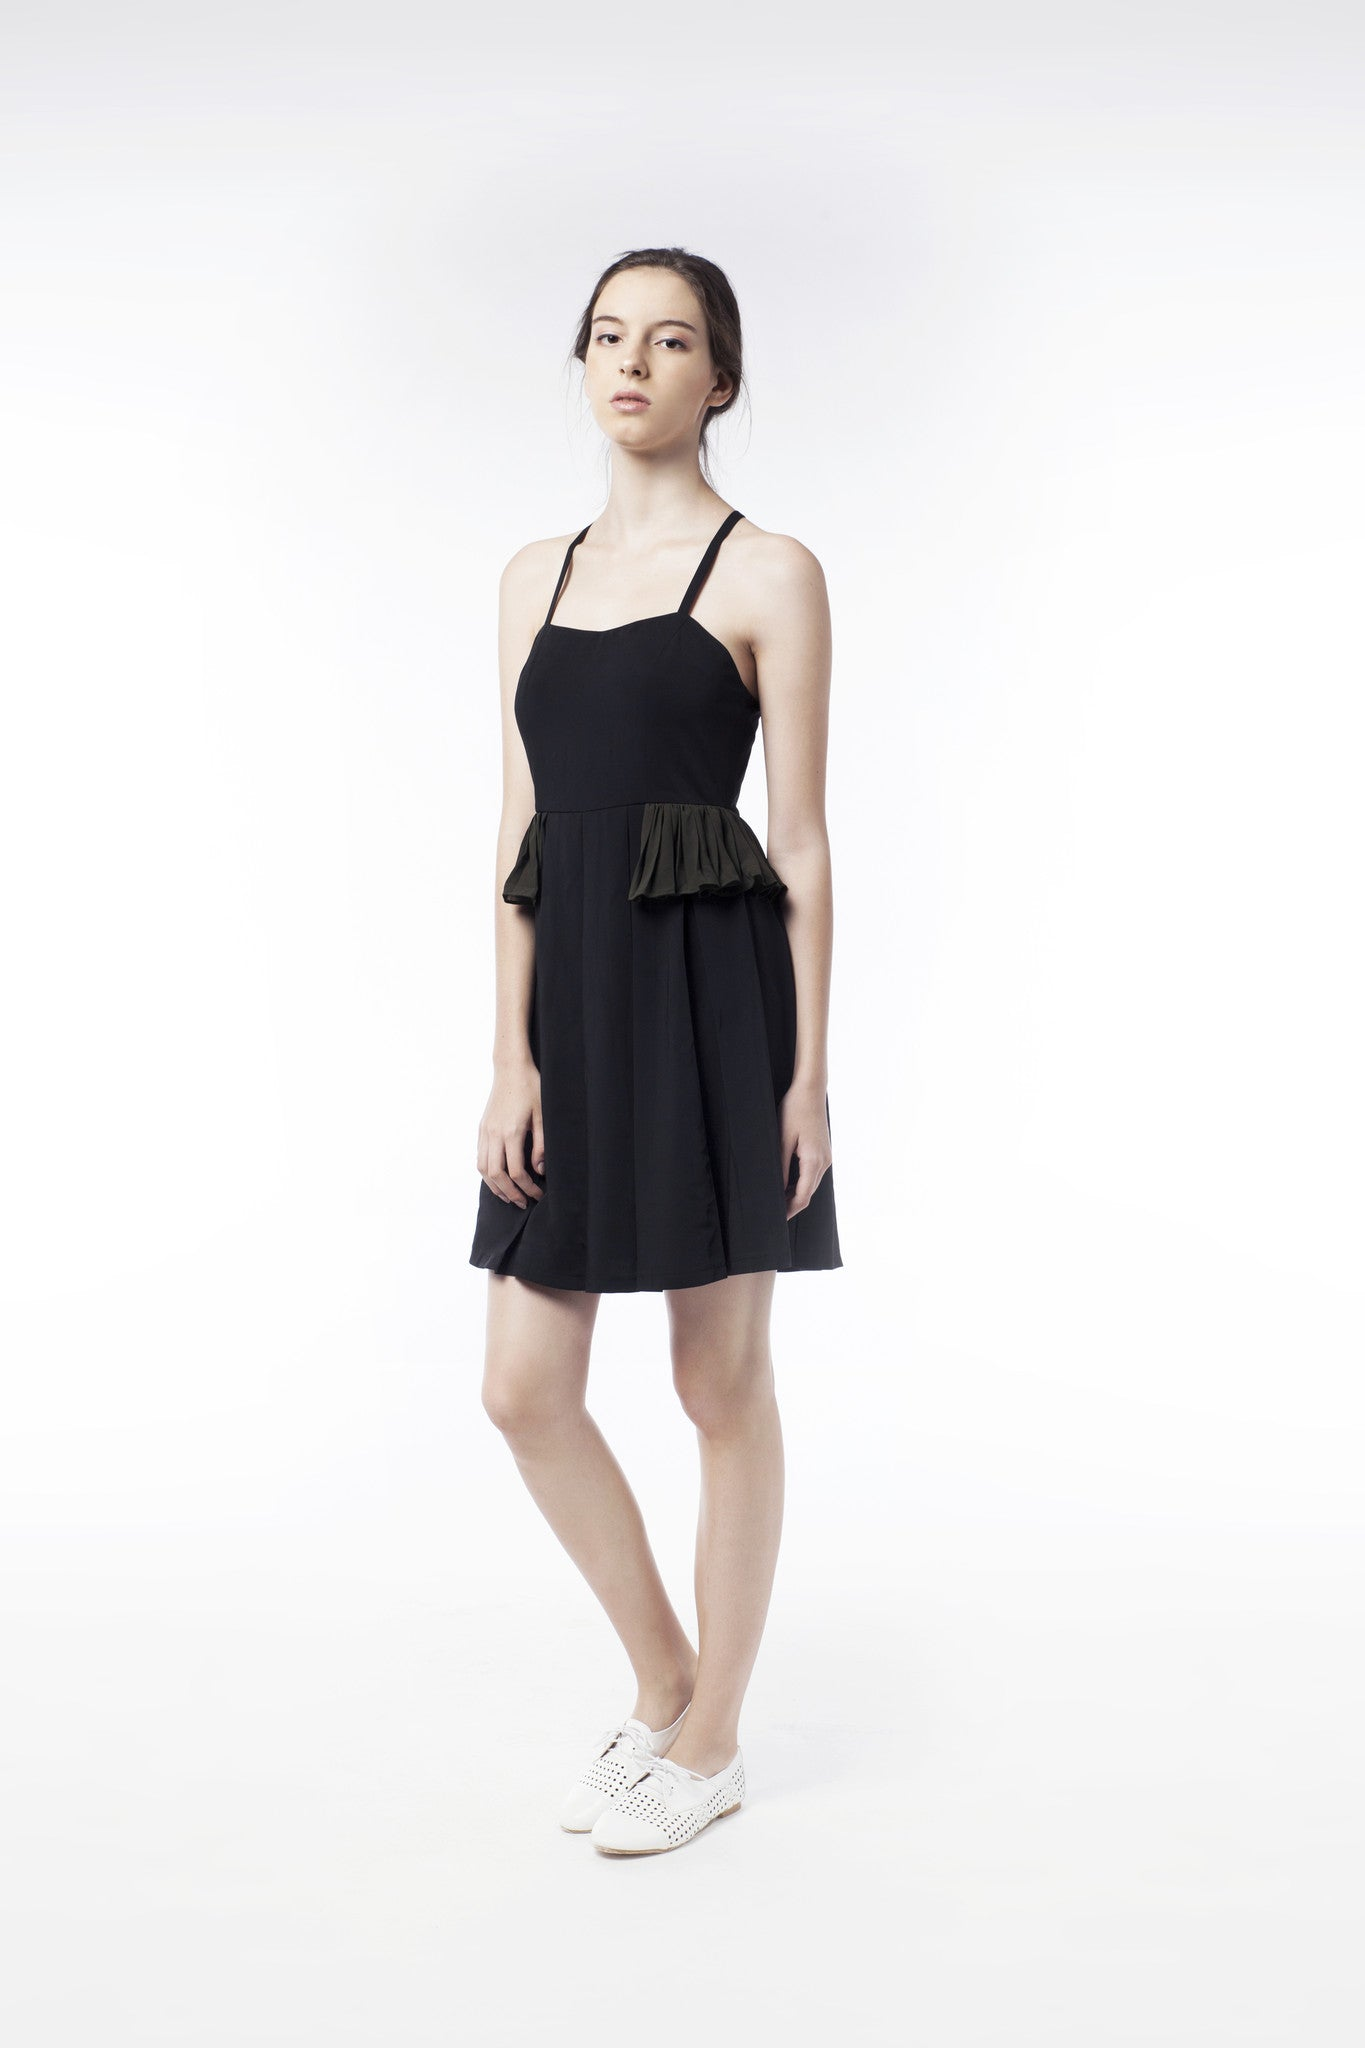 Little Black Dress With Frill - GlanceZ   - 1